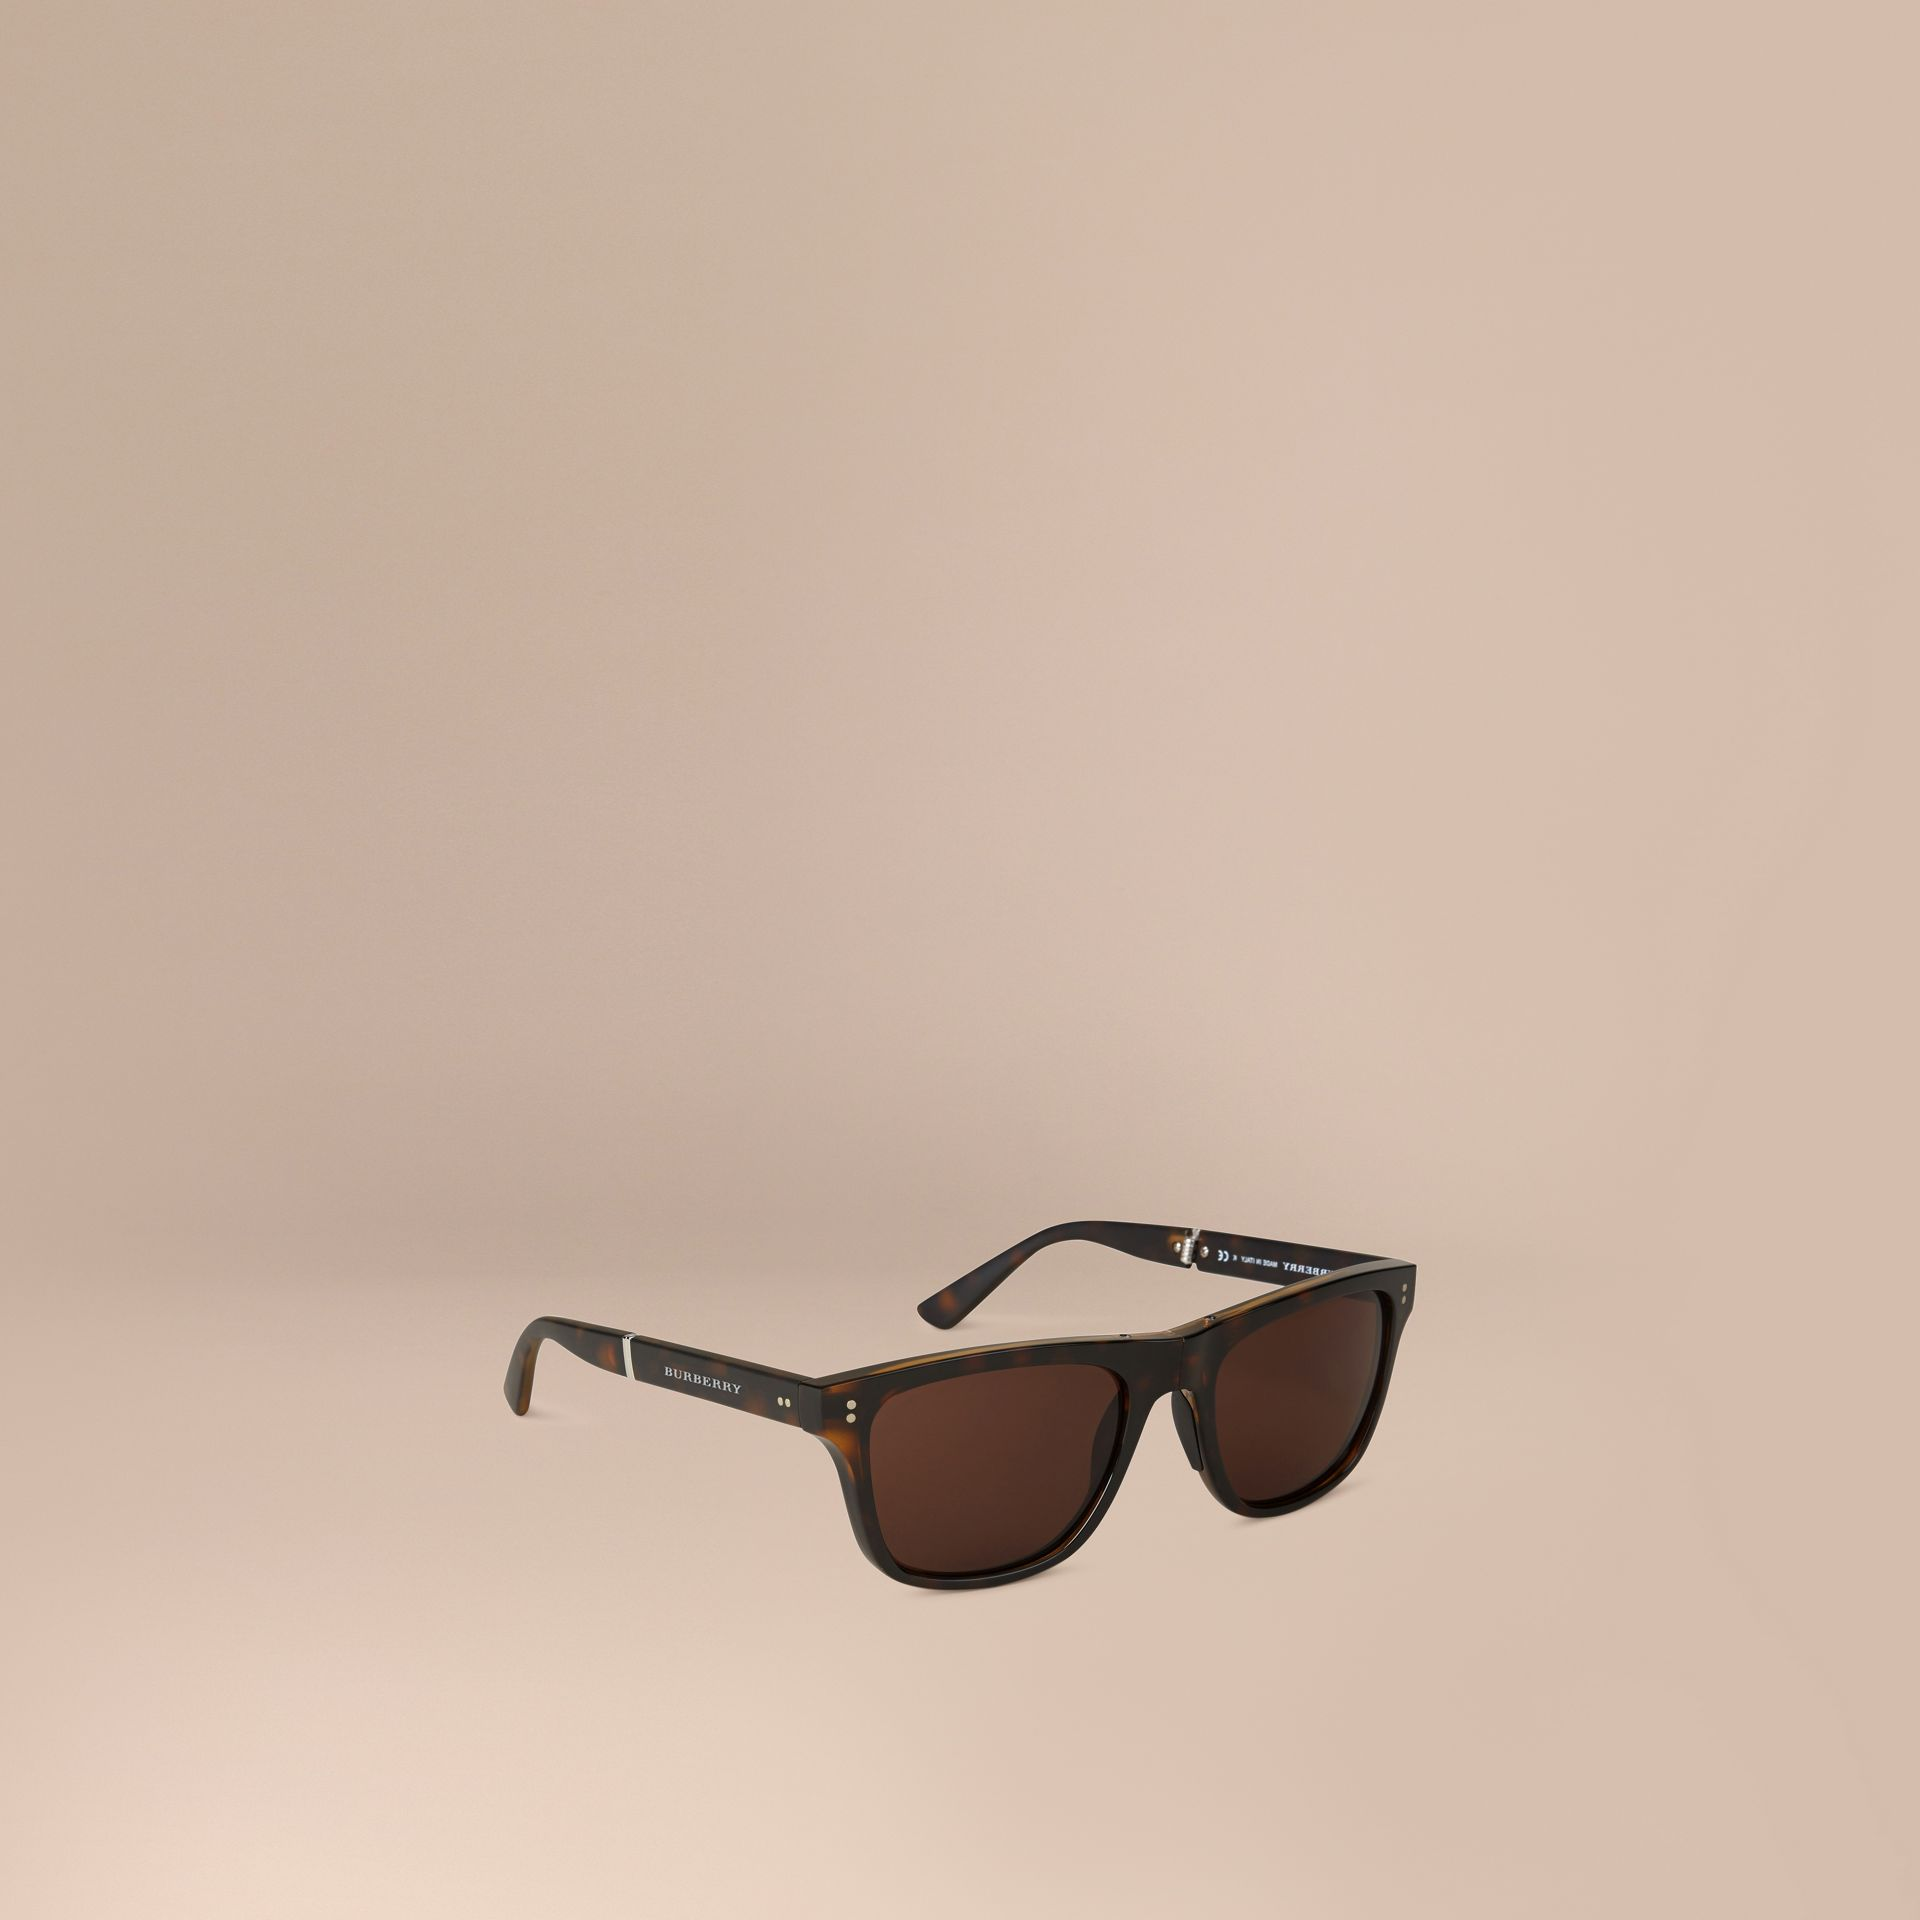 Folding Rectangular Frame Sunglasses in Dark Brown - Men | Burberry United Kingdom - gallery image 1